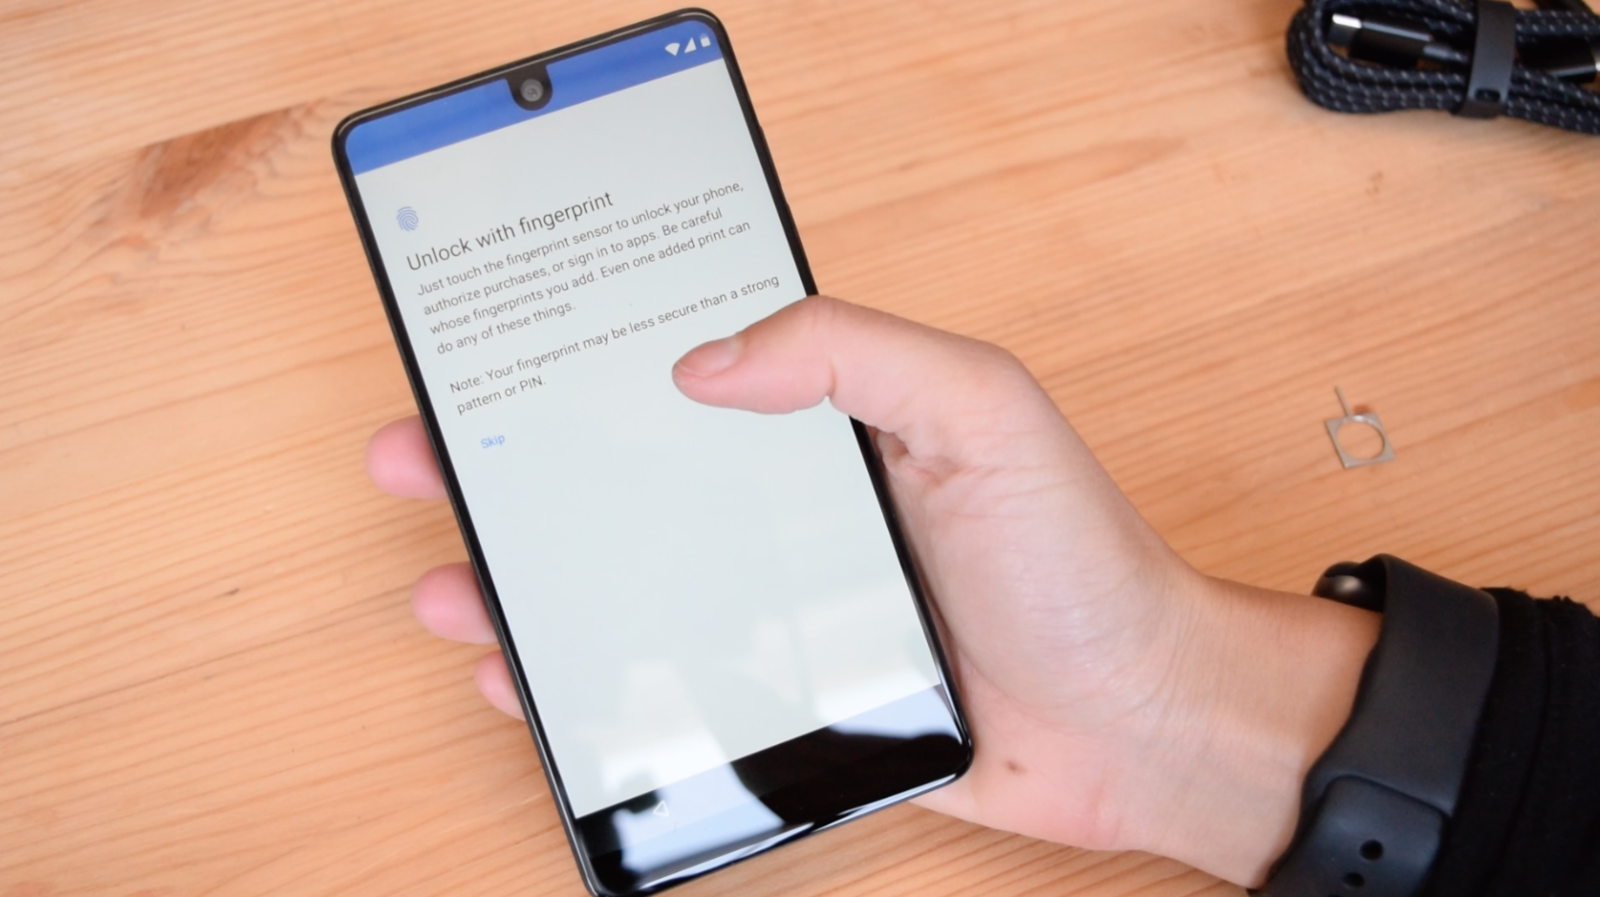 The Essential phone's screen is 5.71 inches diagonally. But because its display reaches so far to the edge, it feels like an XL phone in a non-XL package. Its power button is lower than the volume control (something I had to get used to), which makes it easier to reach. However, the fingerprint sensor is quite high, so when I was using the phone one-handed, I often had to precariously wiggle the phone to reach the bottom of the screen and access back/home buttons. The shape of the phone is also more brick-like, compared to the rounded curves of Samsung's flagships, and that made it more difficult for my thumb to reach the far corners of the display.